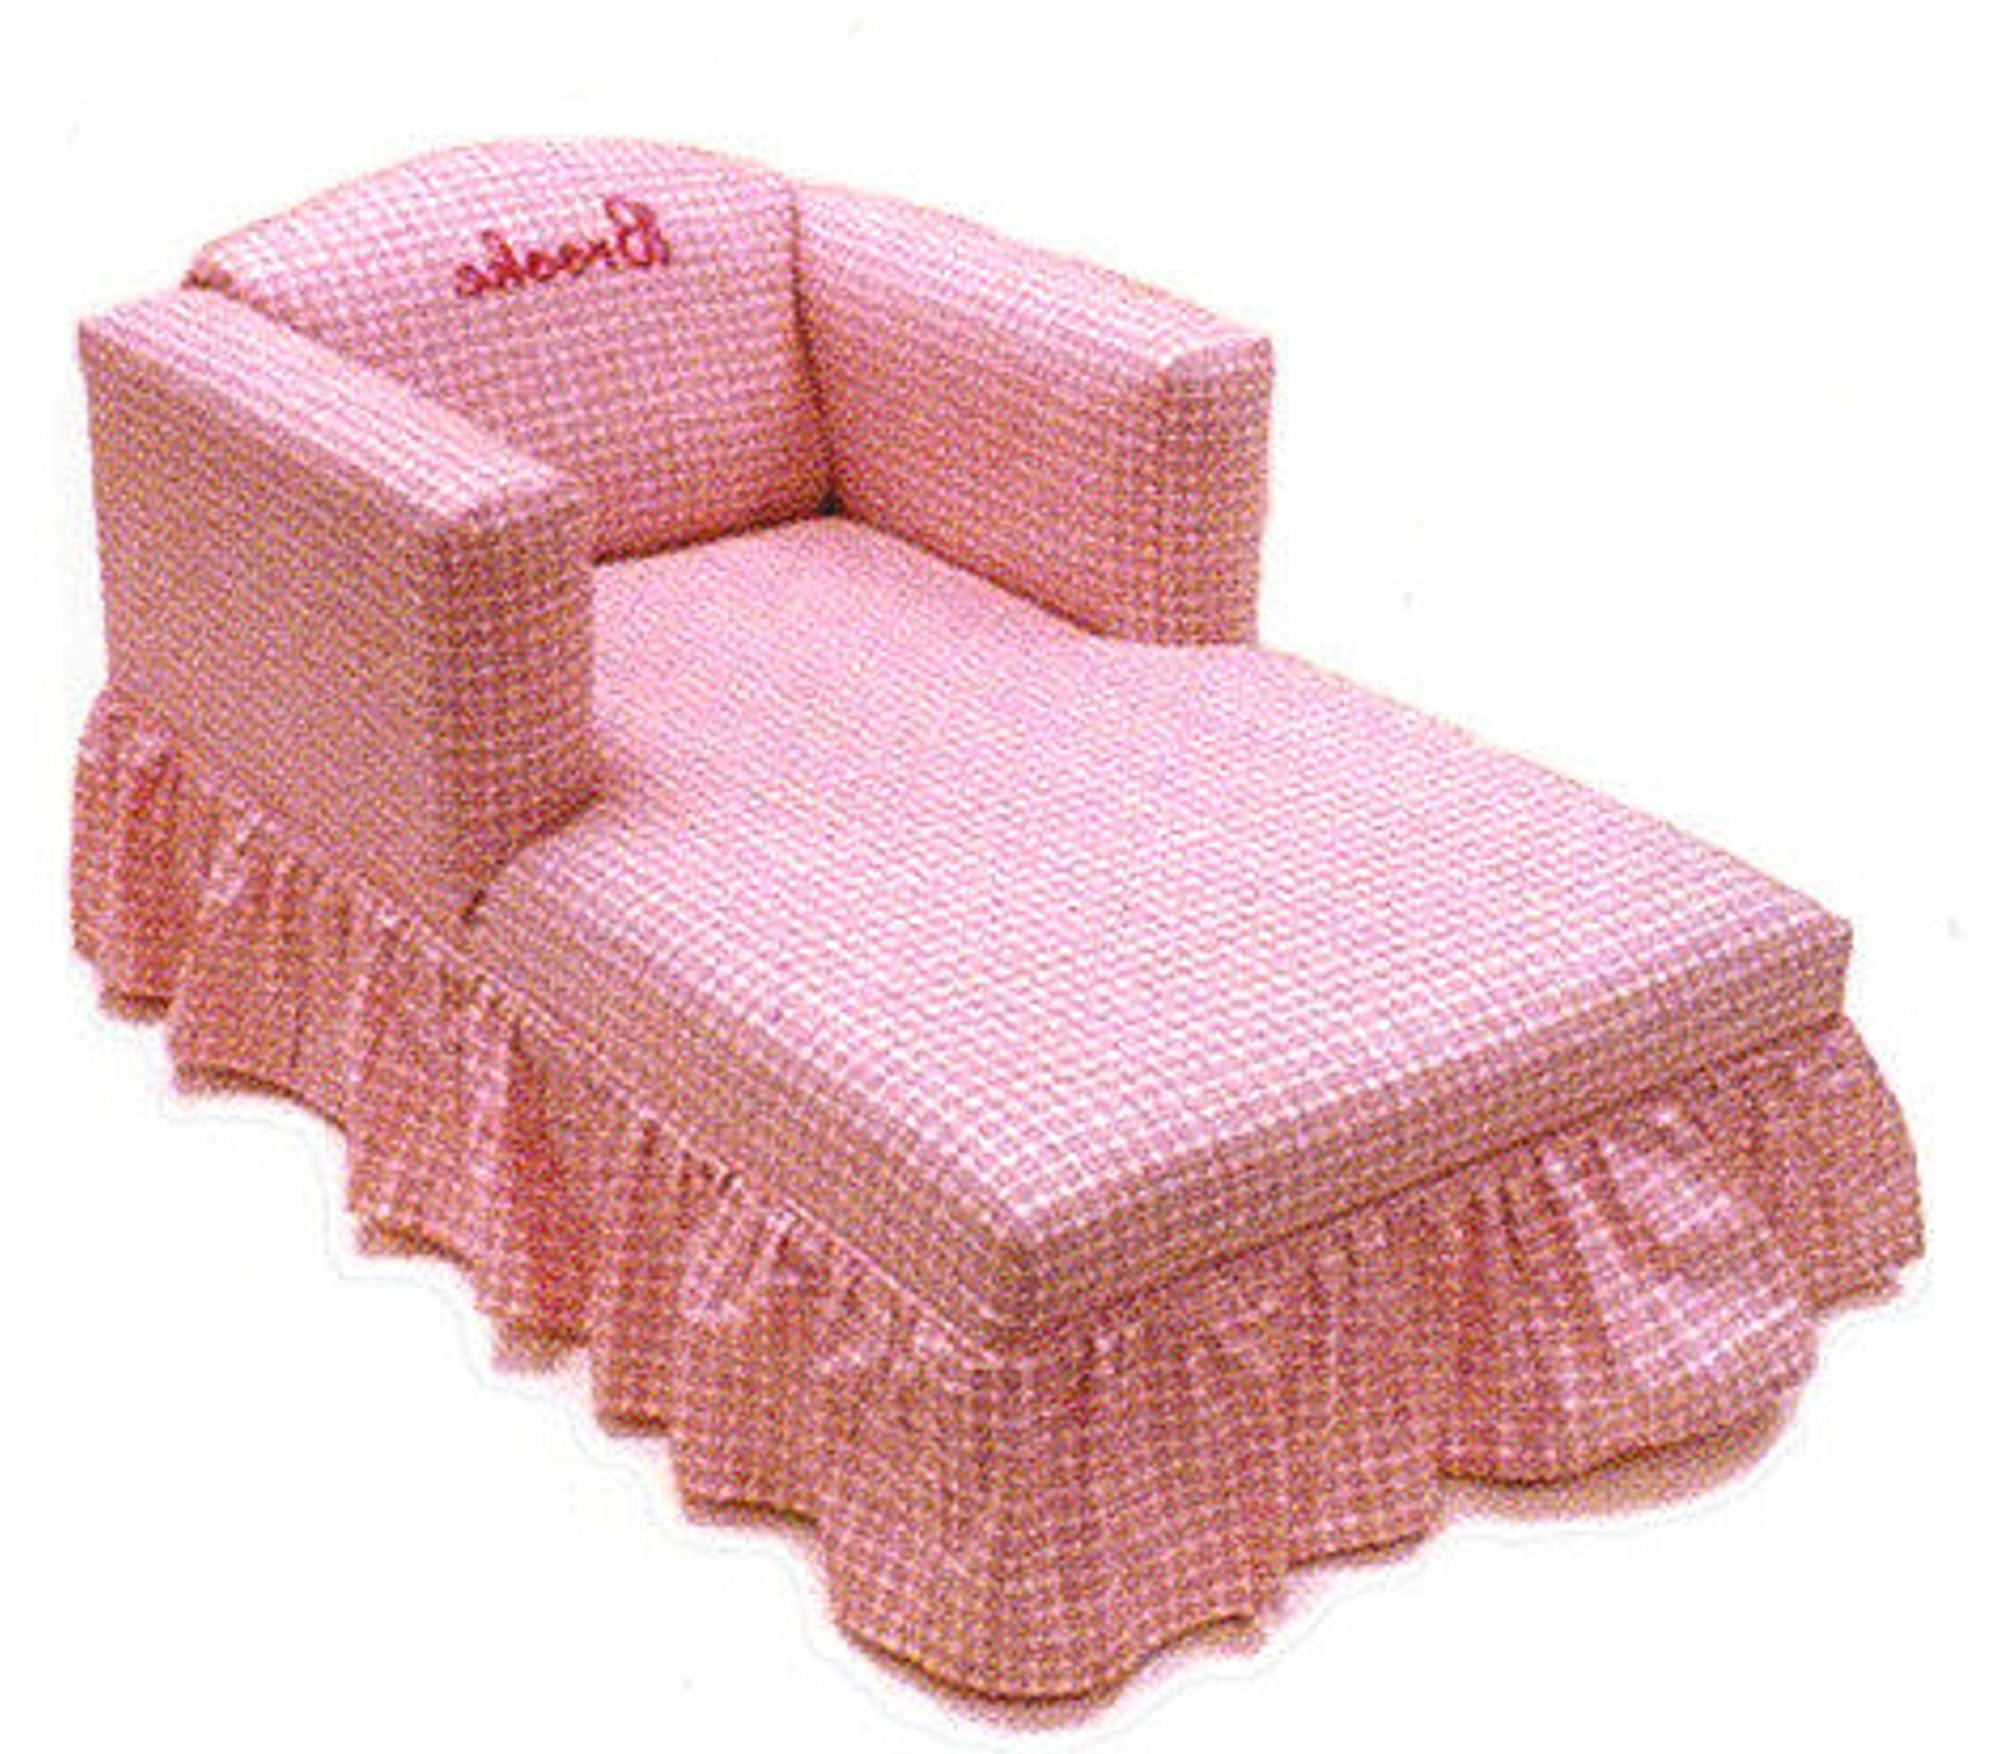 Kid's Chaise Lounge (Gallery 10 of 15)